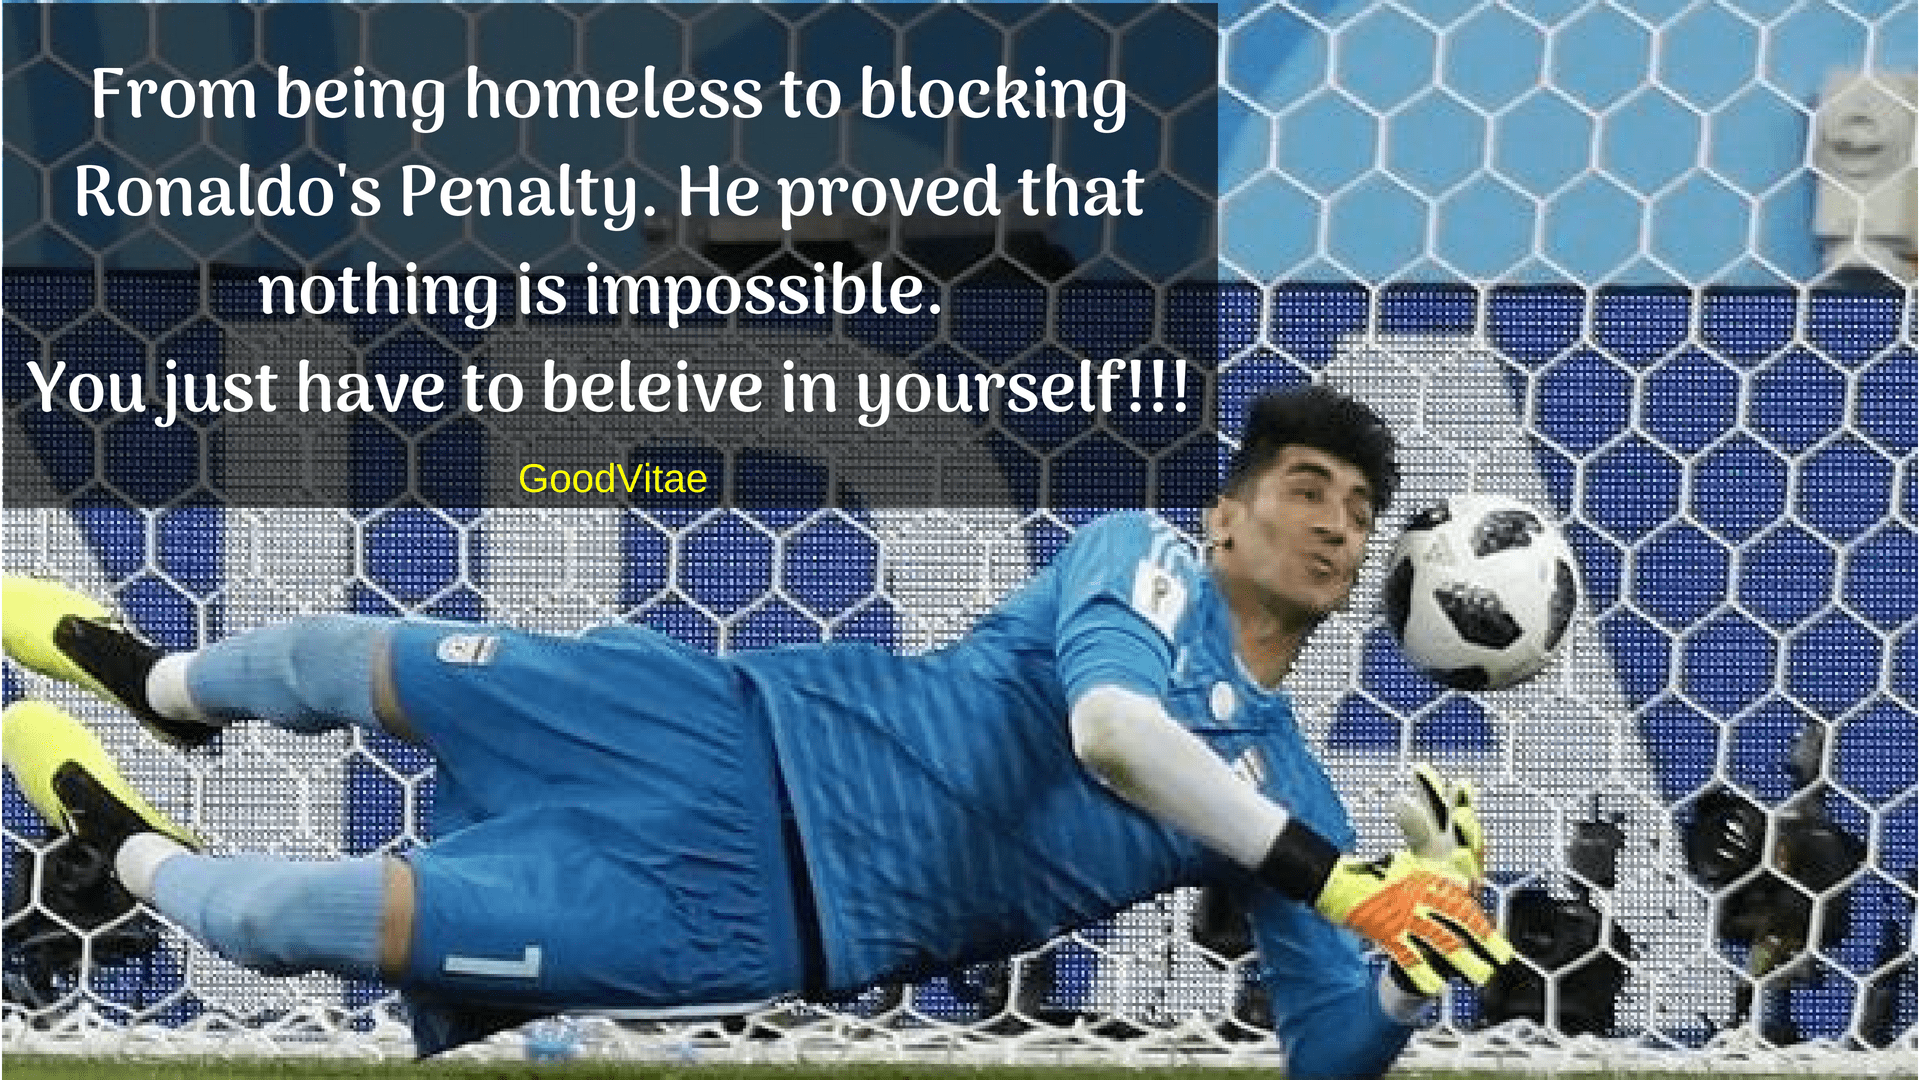 [Image] Alireza Beiranvand has become an inspiration for millions